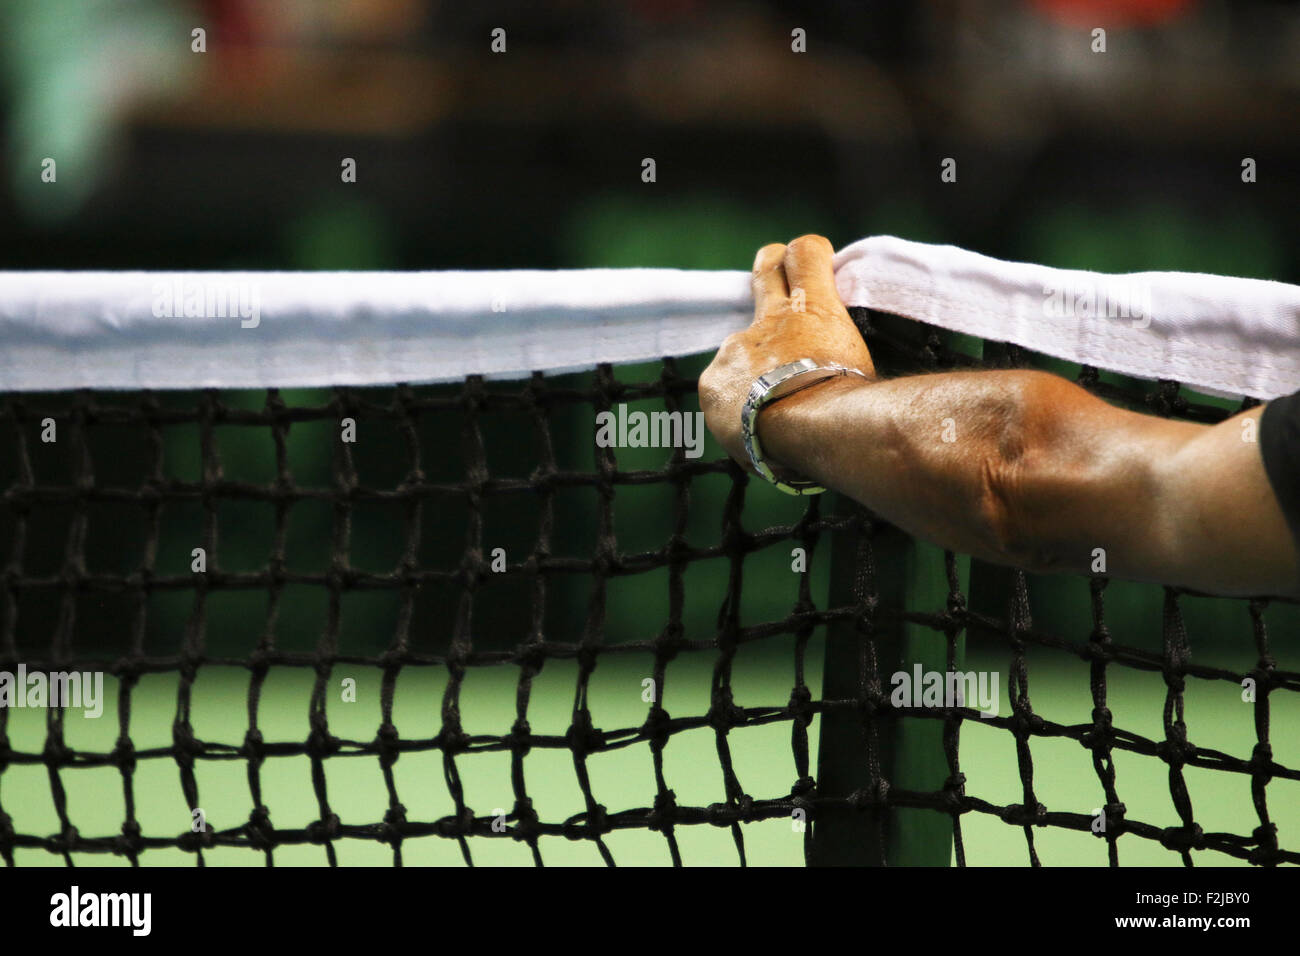 Concept Tennis net officiel inspecte le Photo Stock